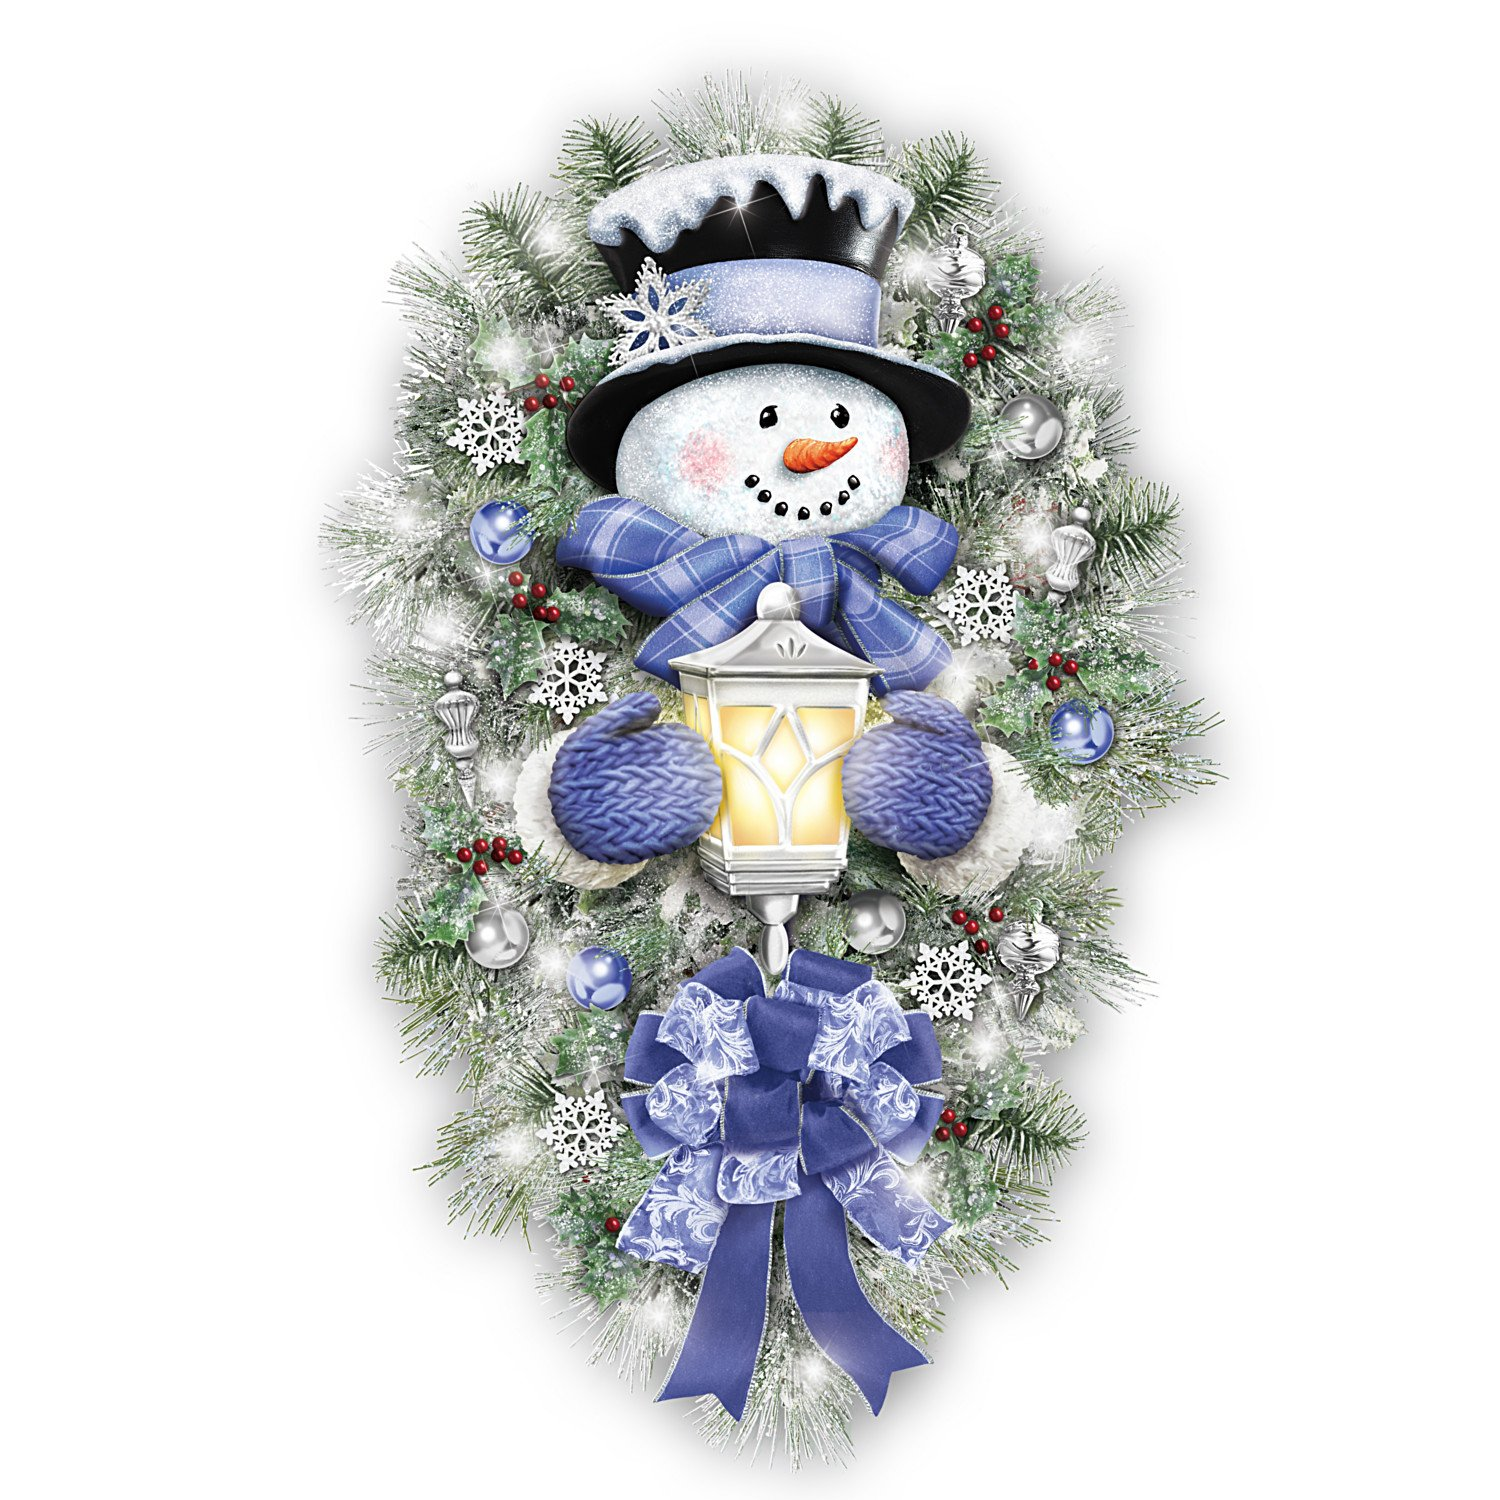 Image of Festive Lighted Thomas Kinkade Snowman Wreath with Illuminated Lantern